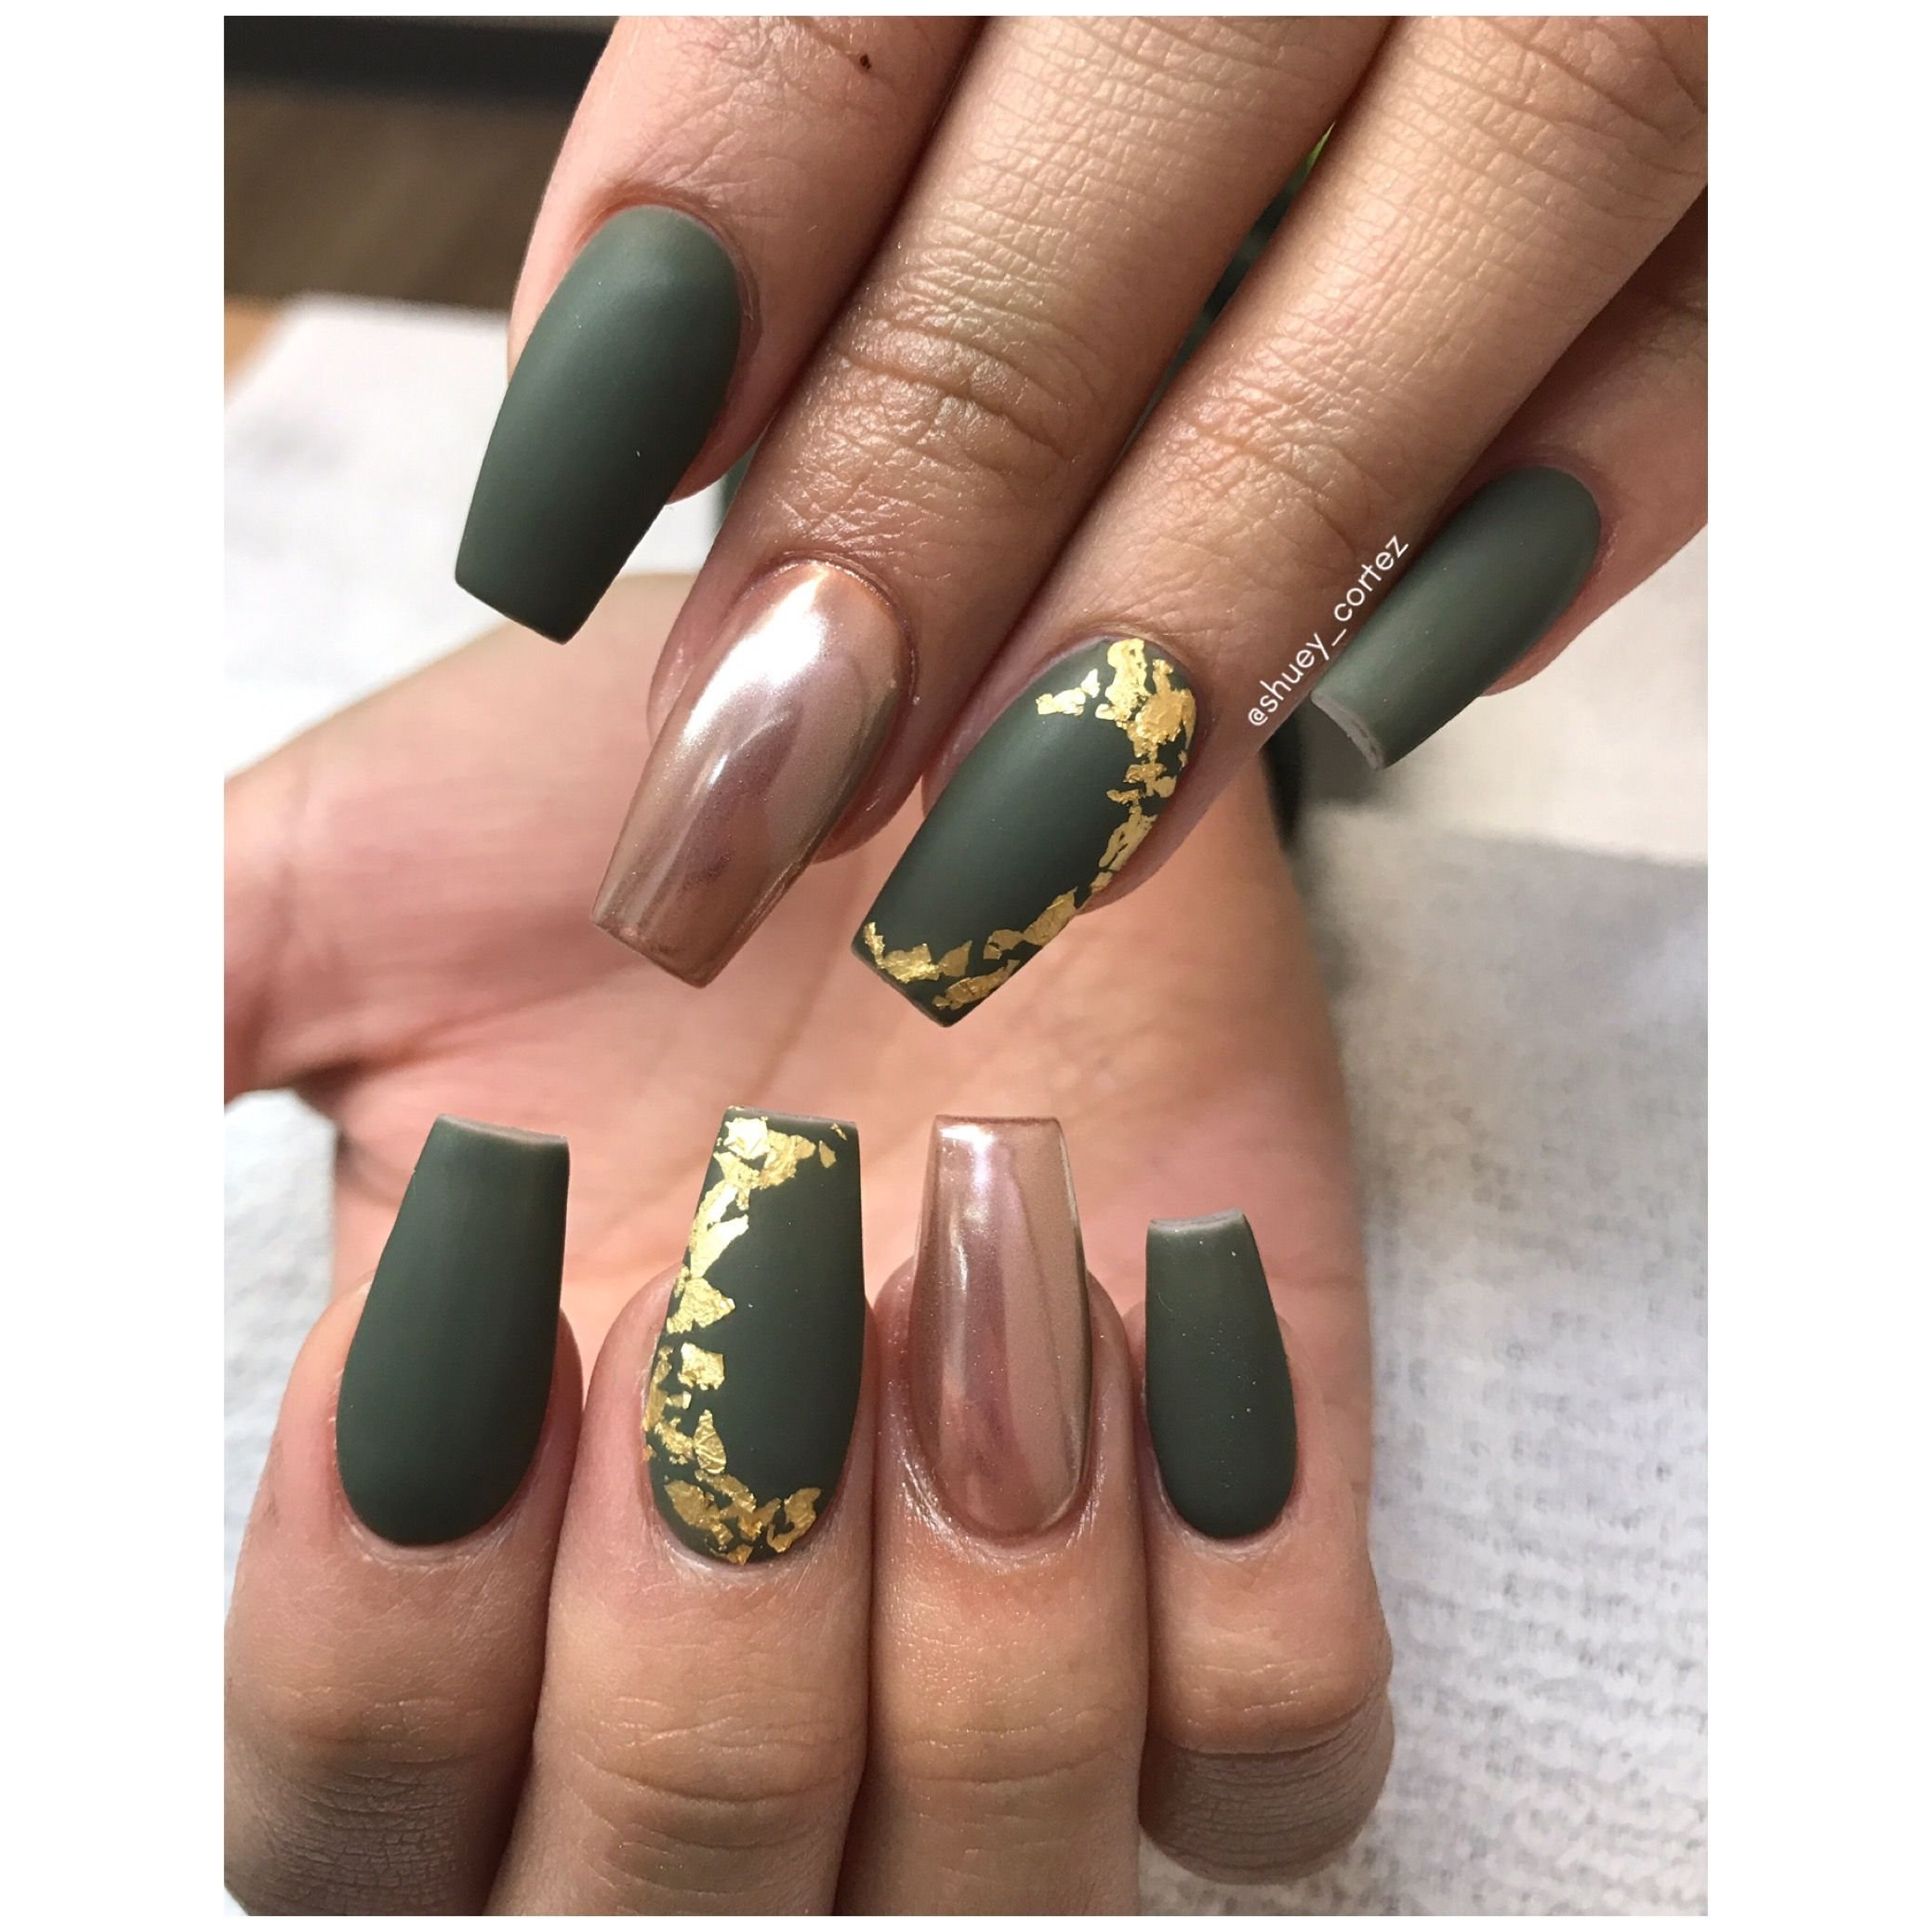 Olive Green Nails Instagram Shuey Cortez Olive Nails Green Nails Green Nail Designs